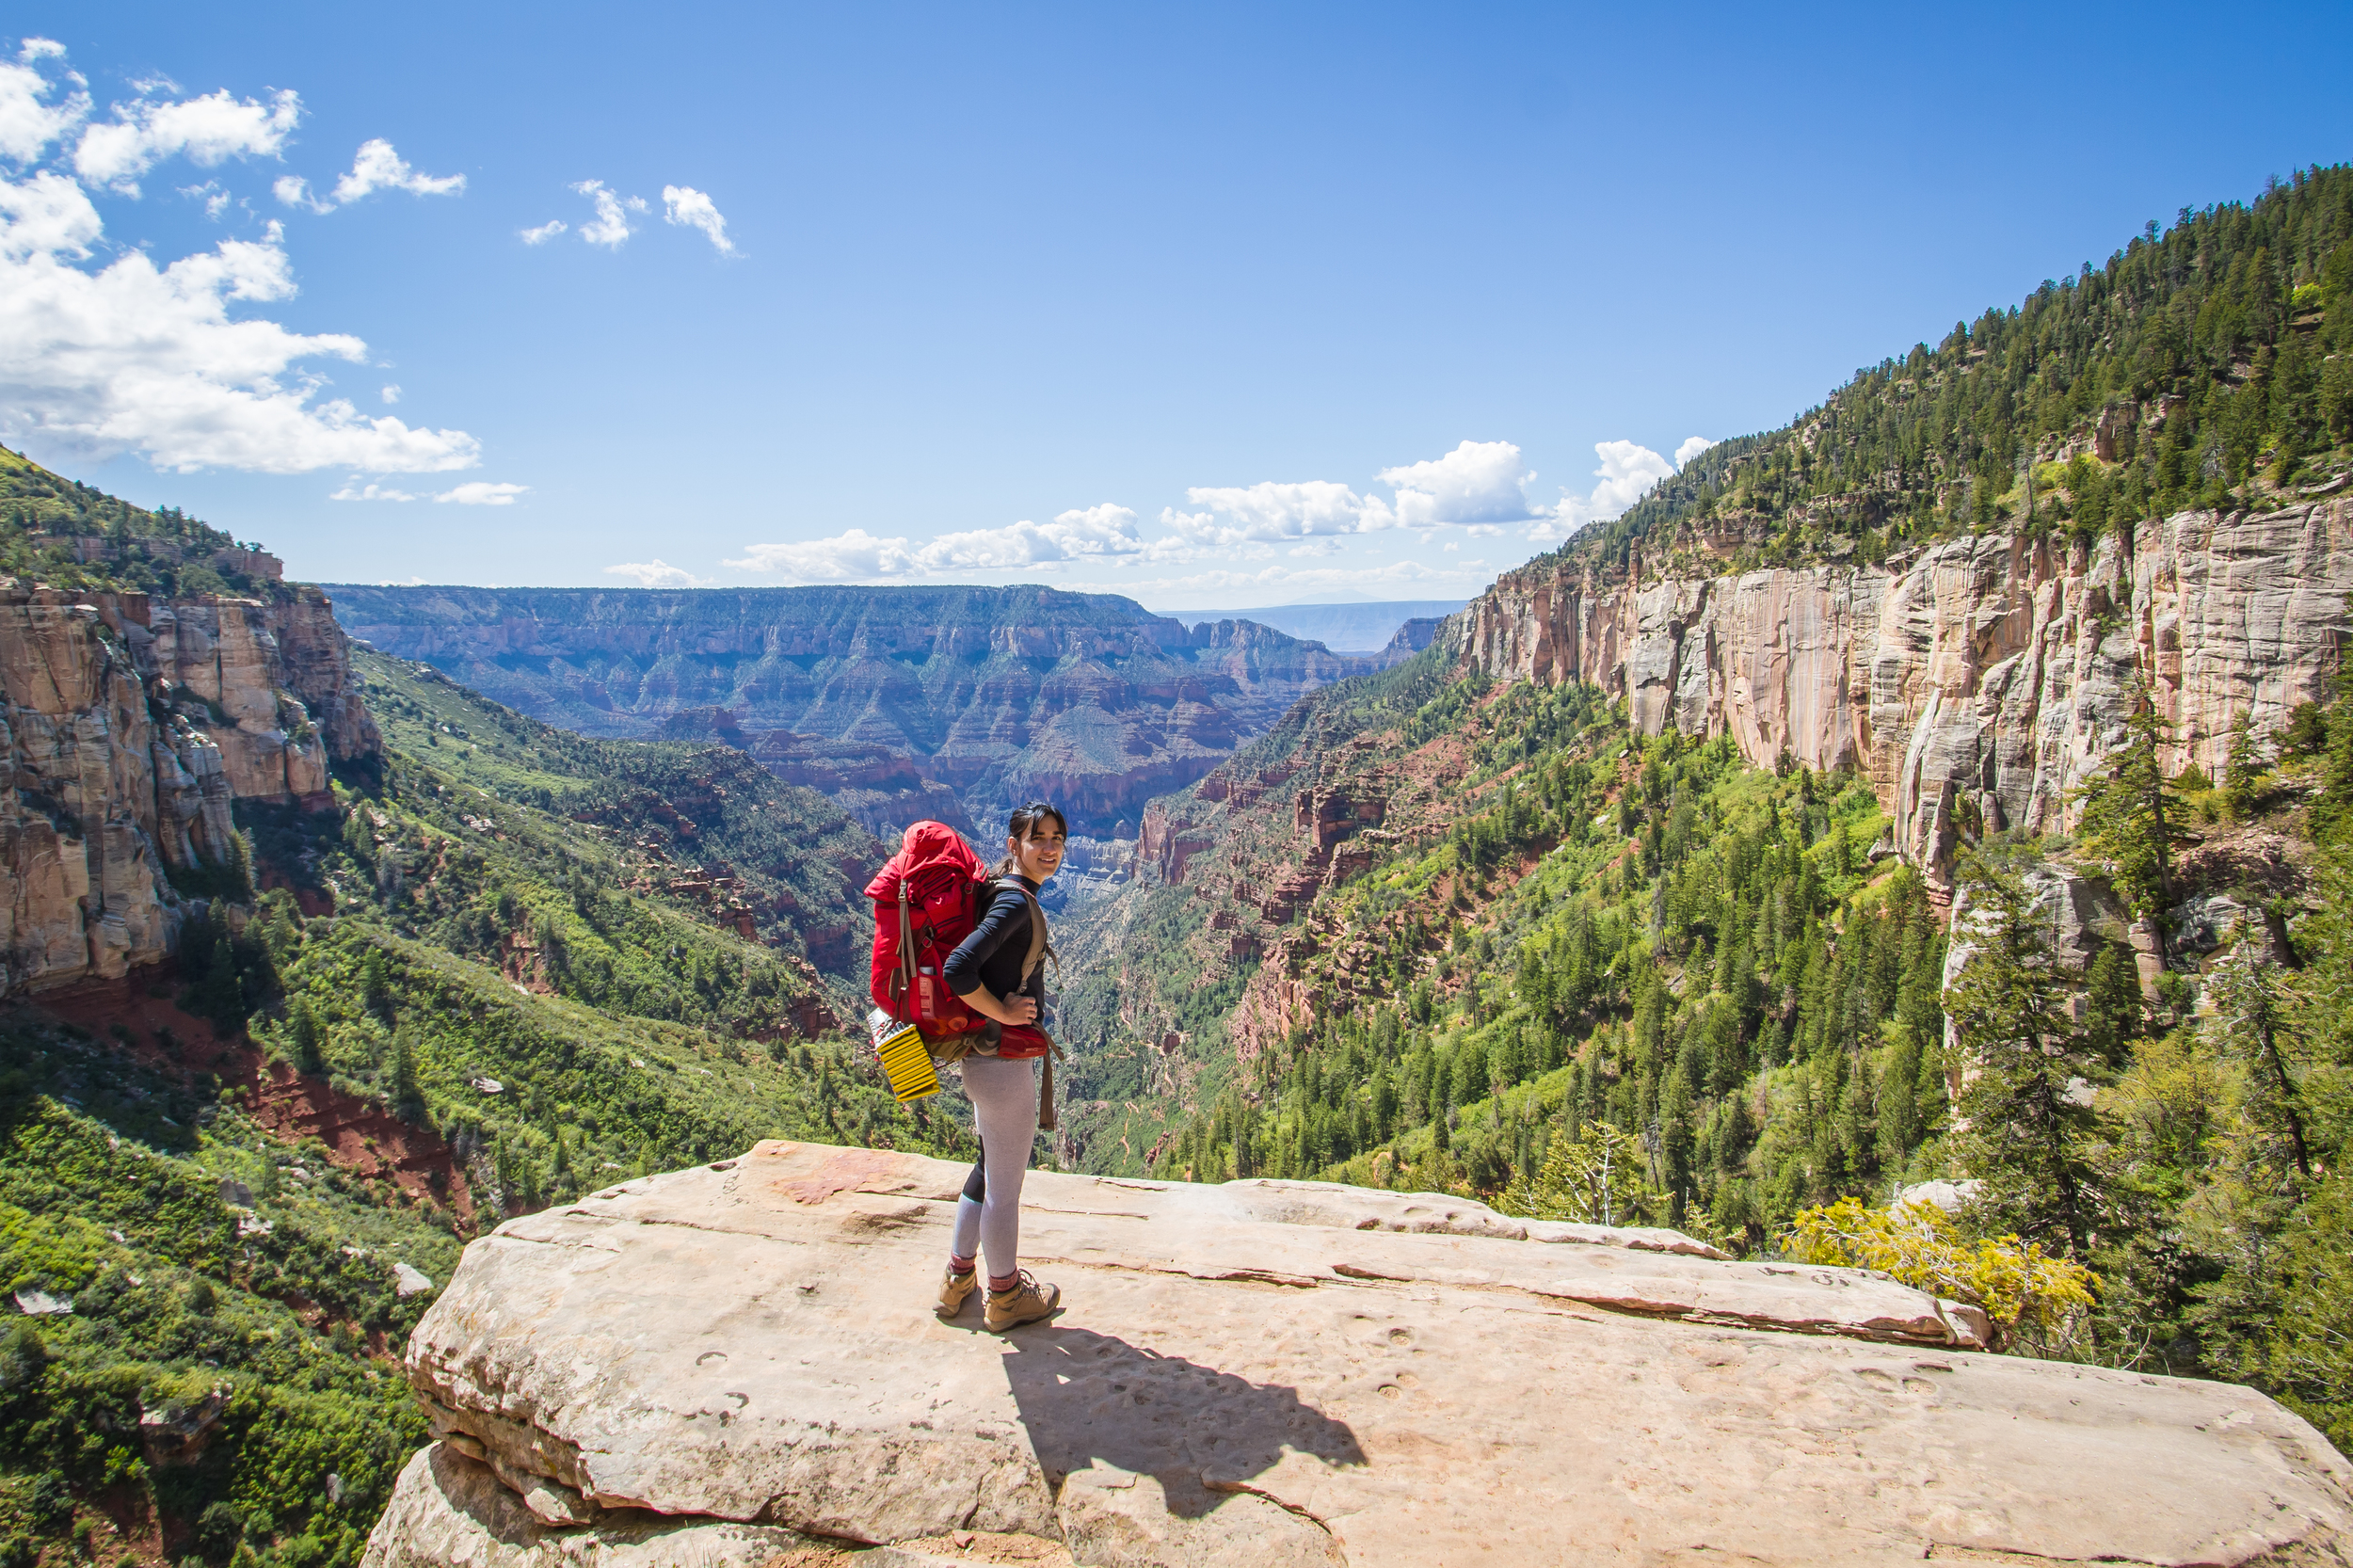 Starting our hike down - Coconino overlook